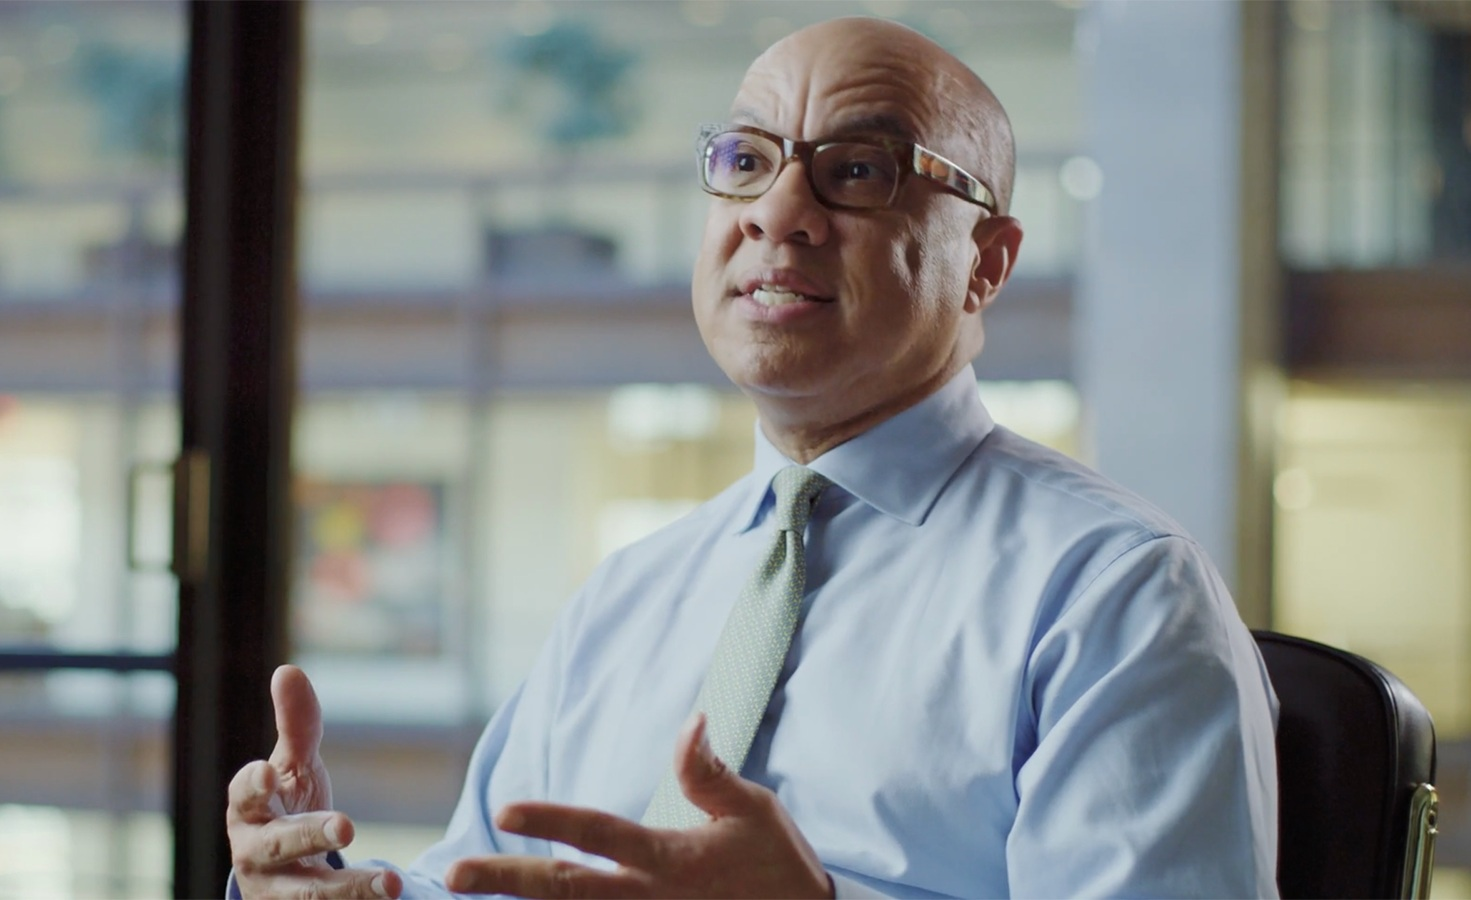 Philanthropy Should Take Risks - Ford Foundation President Darren Walker challenges the philanthropic sector to be bolder and unleash the power of their endowments through impact investing.